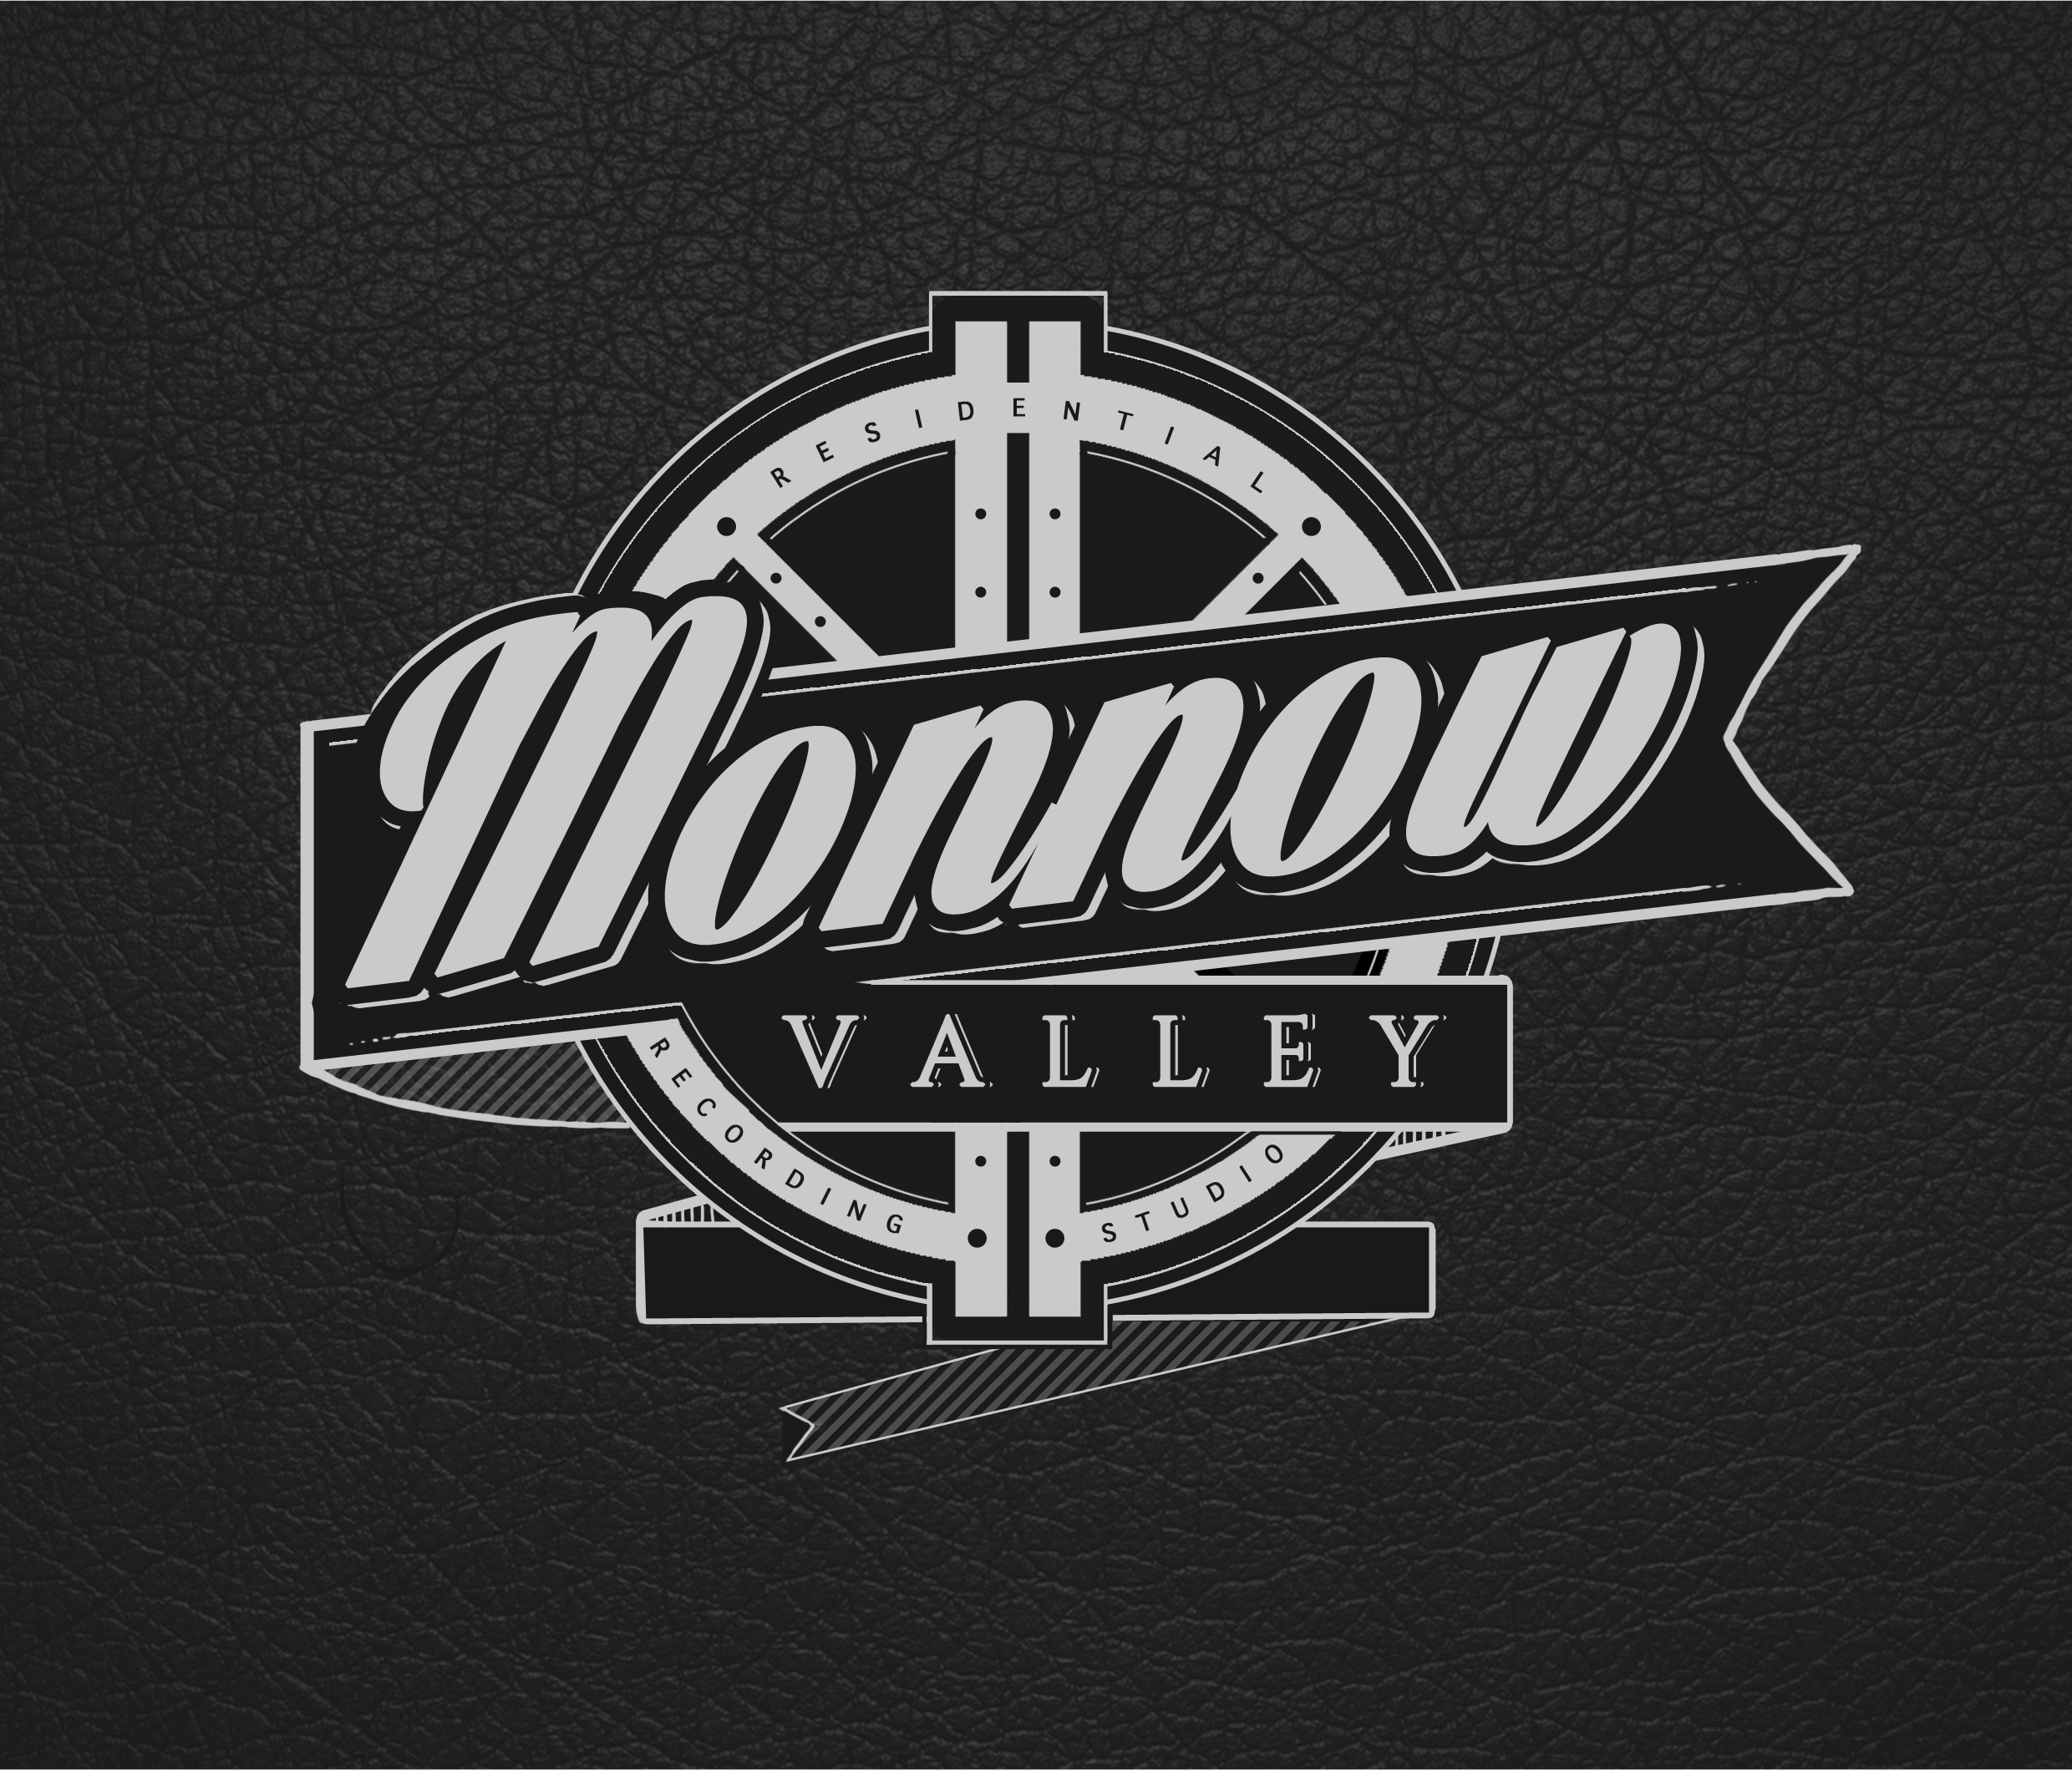 Monnow Valley Calligraphy style logo